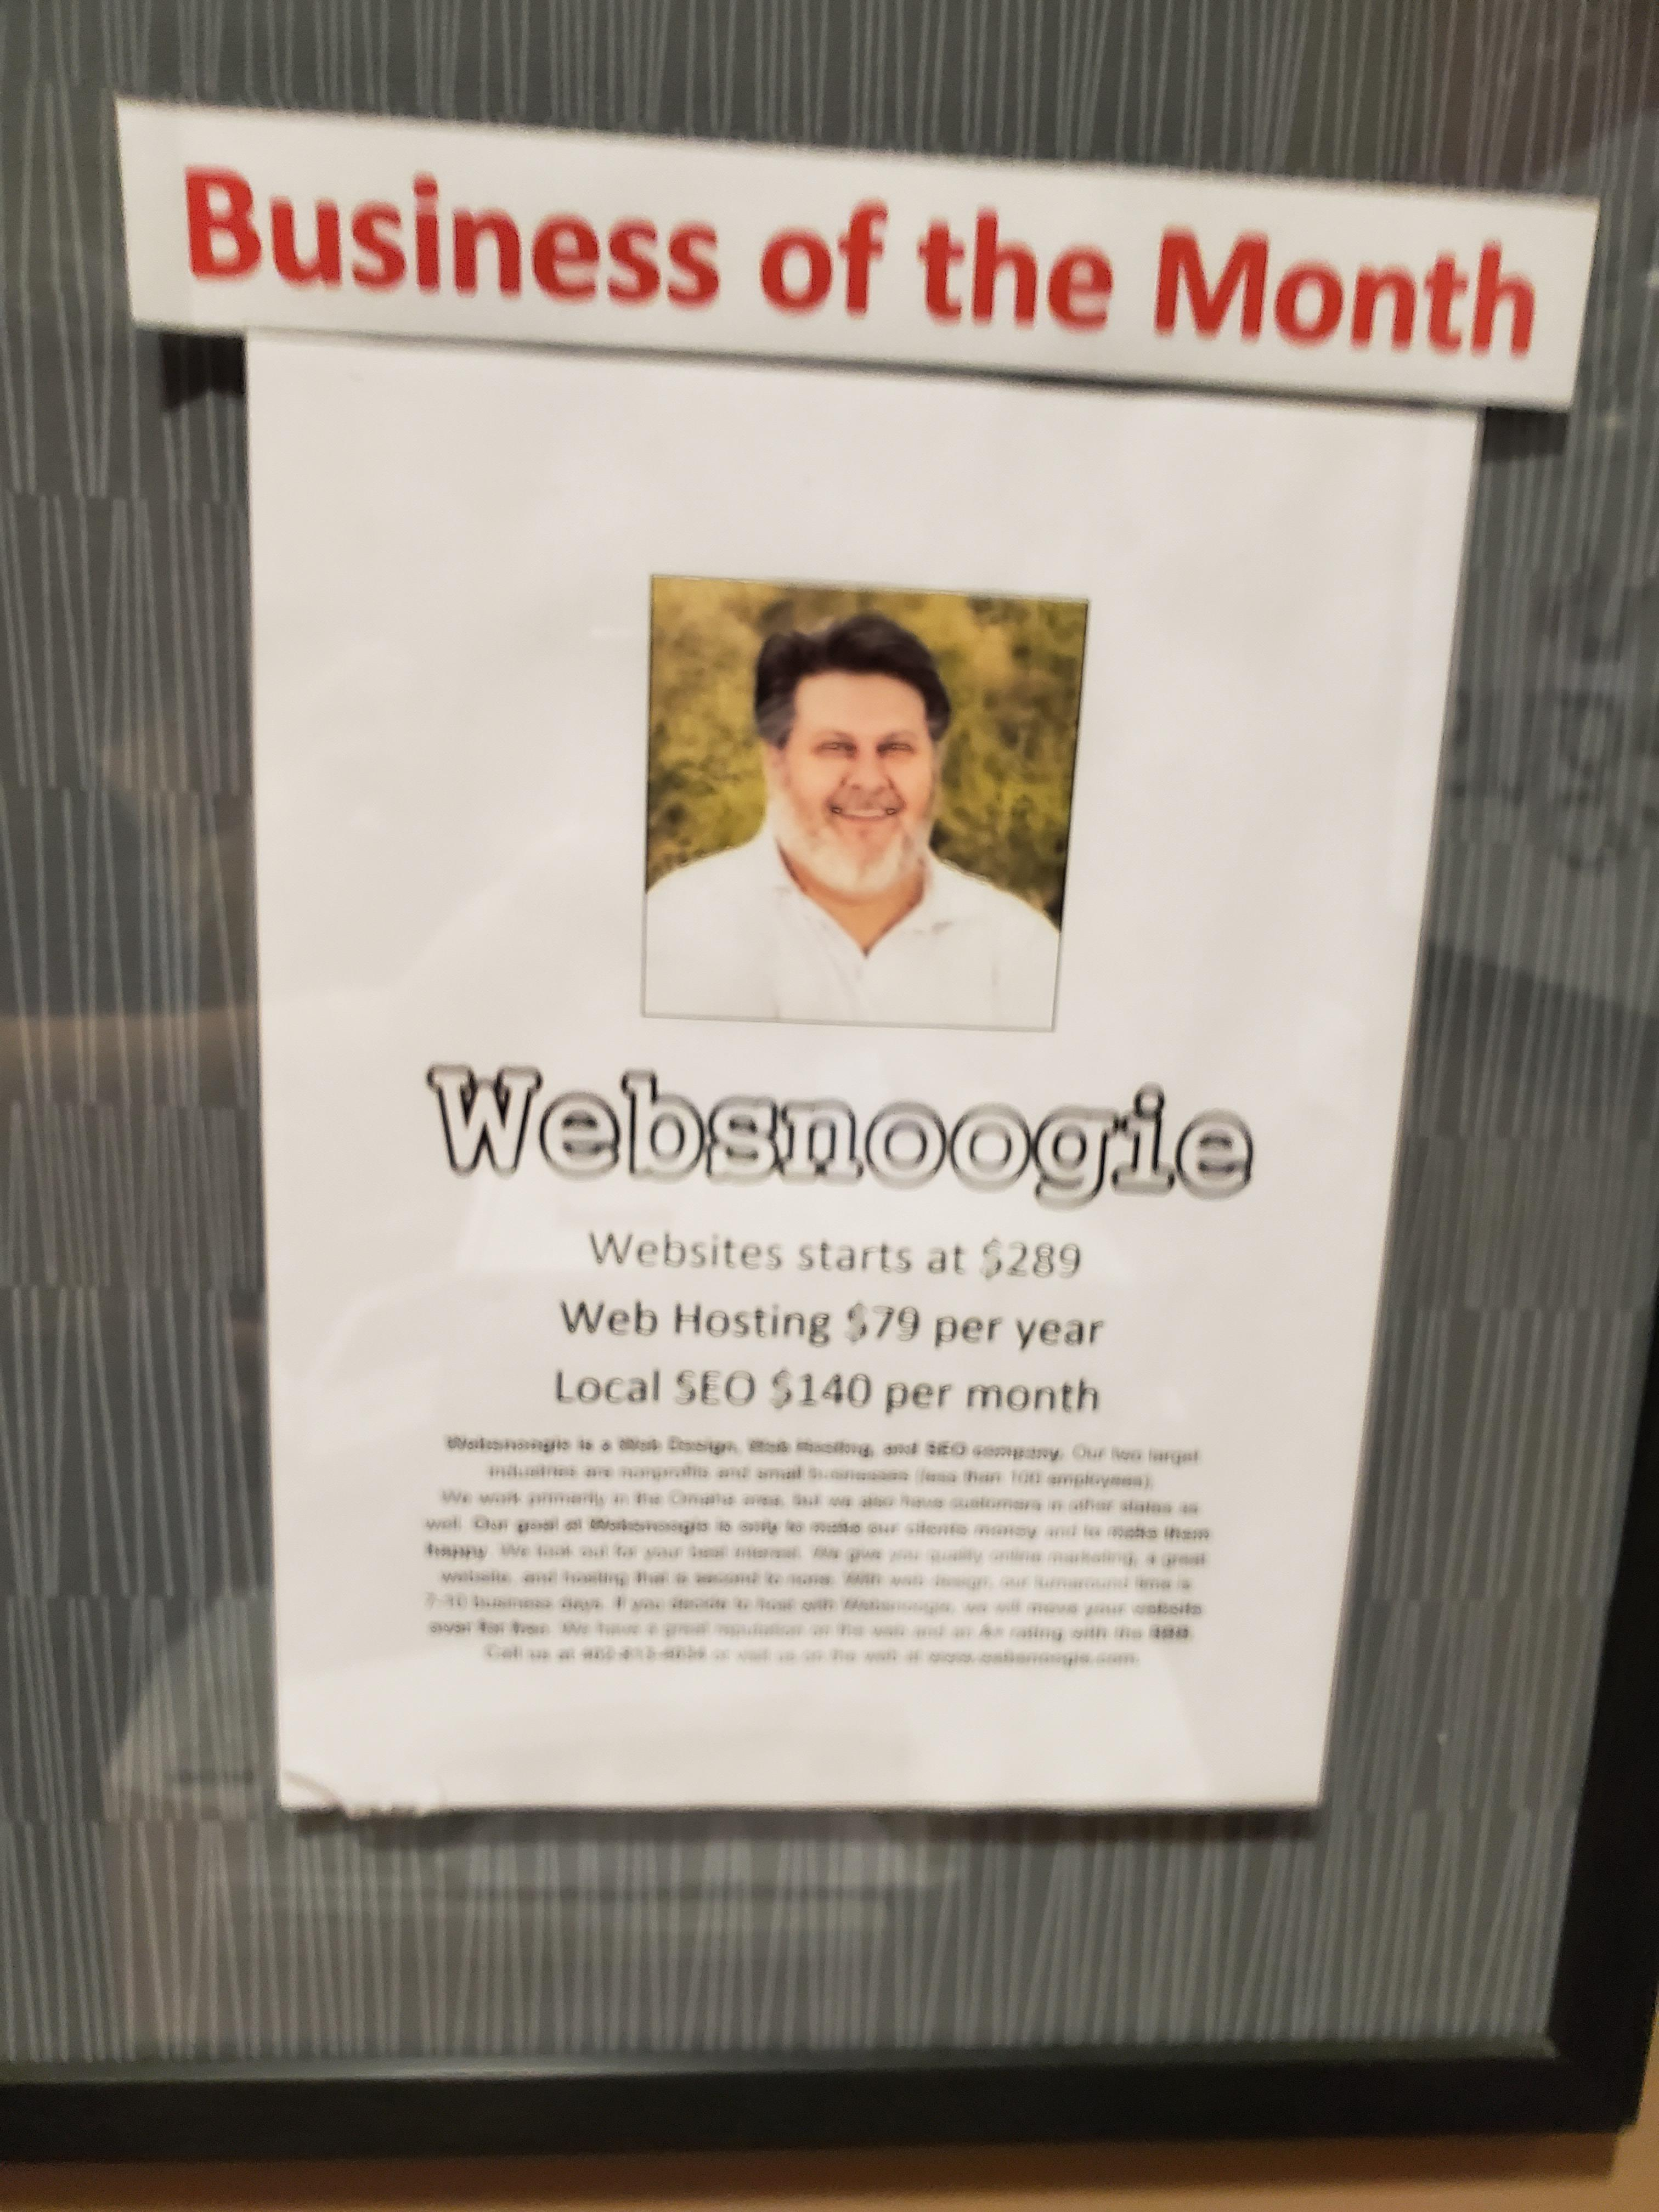 Websnoogie is business of the month at Linden Place!